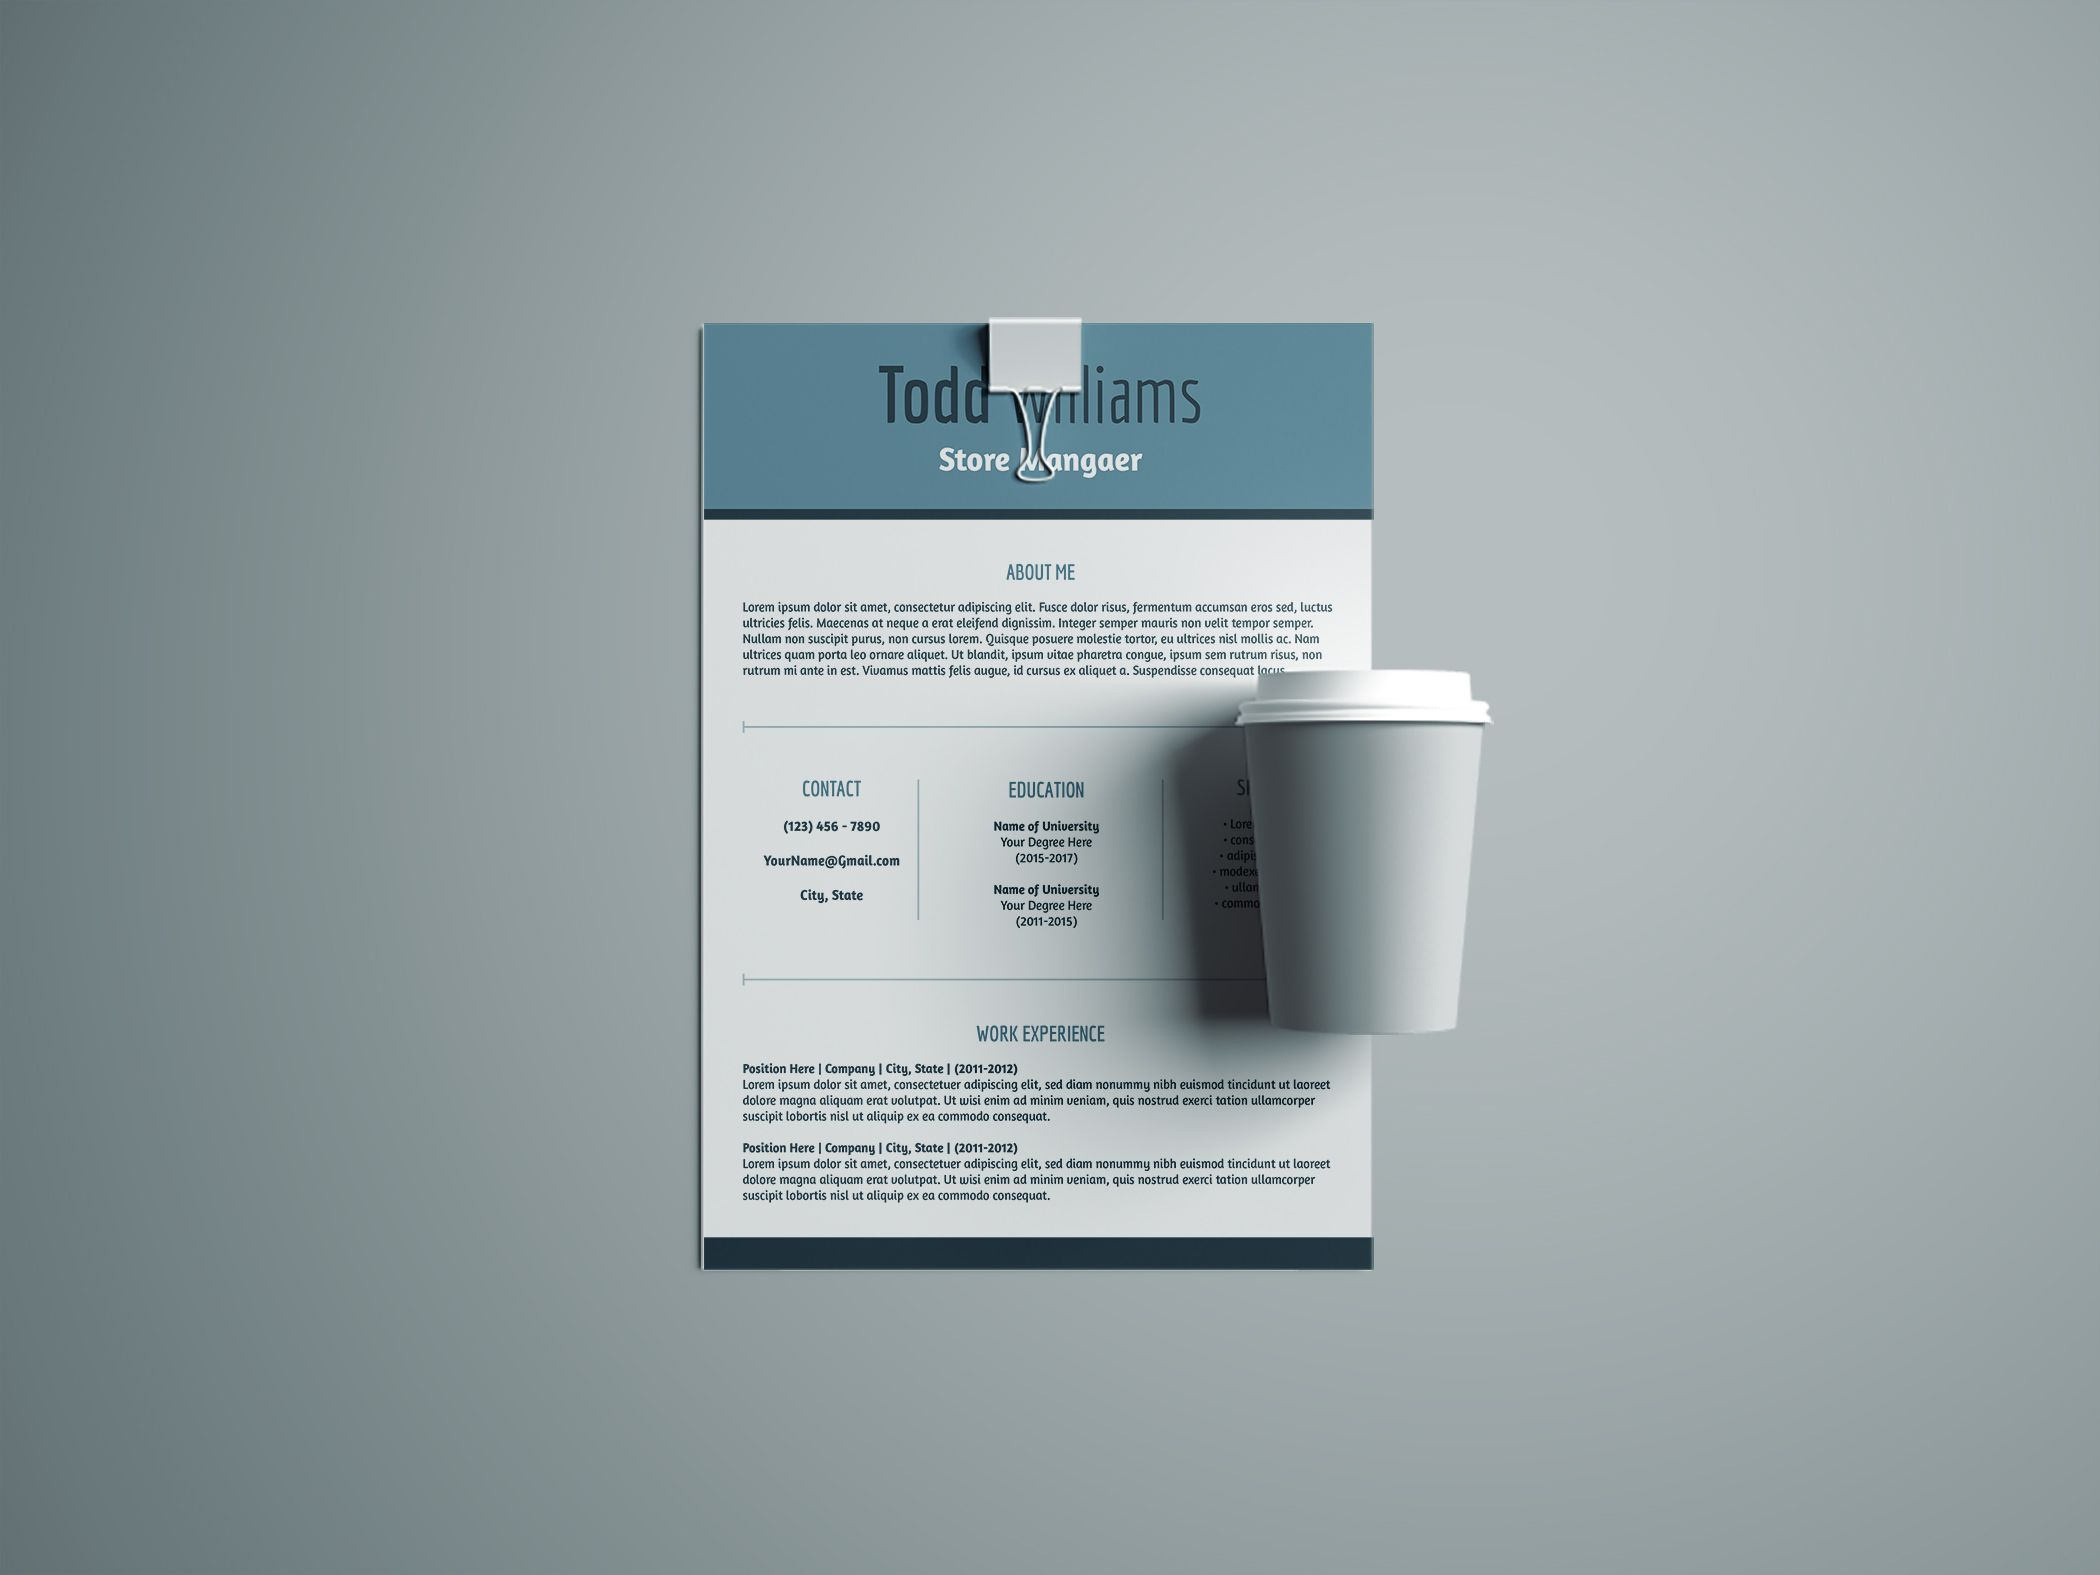 Stand out in your next interview with a resume and cover